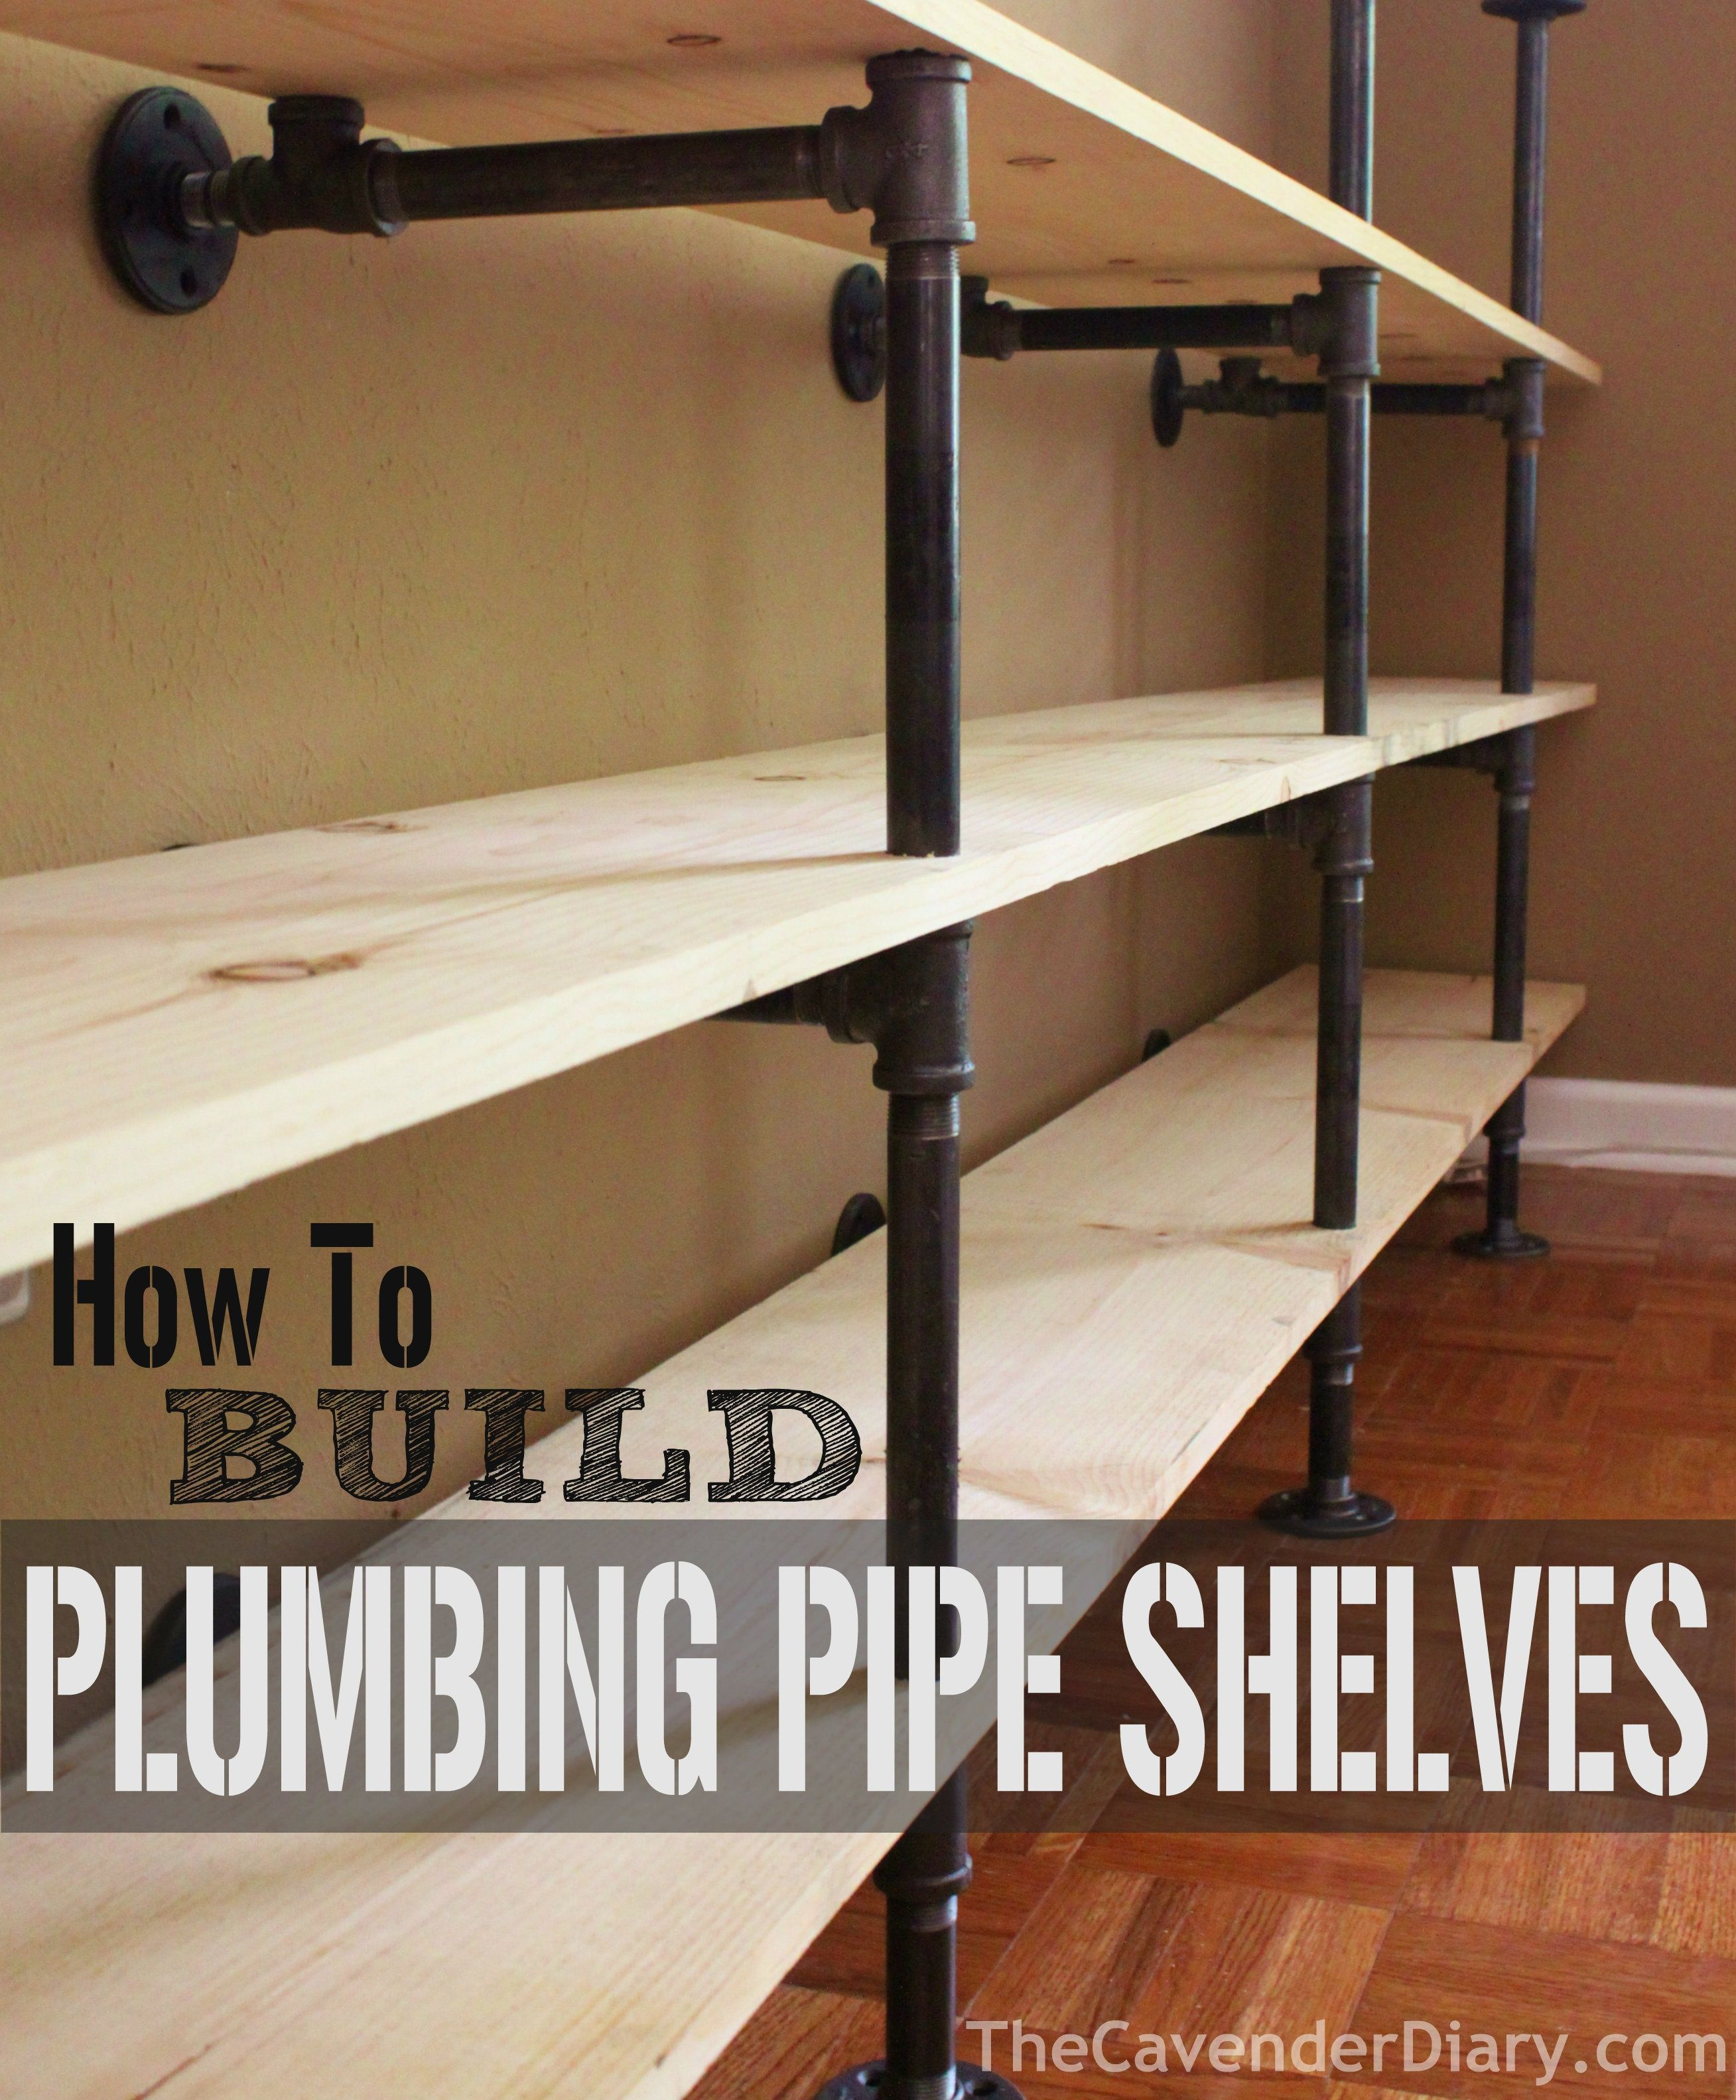 Industrial Bookcase Diy How To Build Plumbing Pipe Shelves From The Cavender Diary The